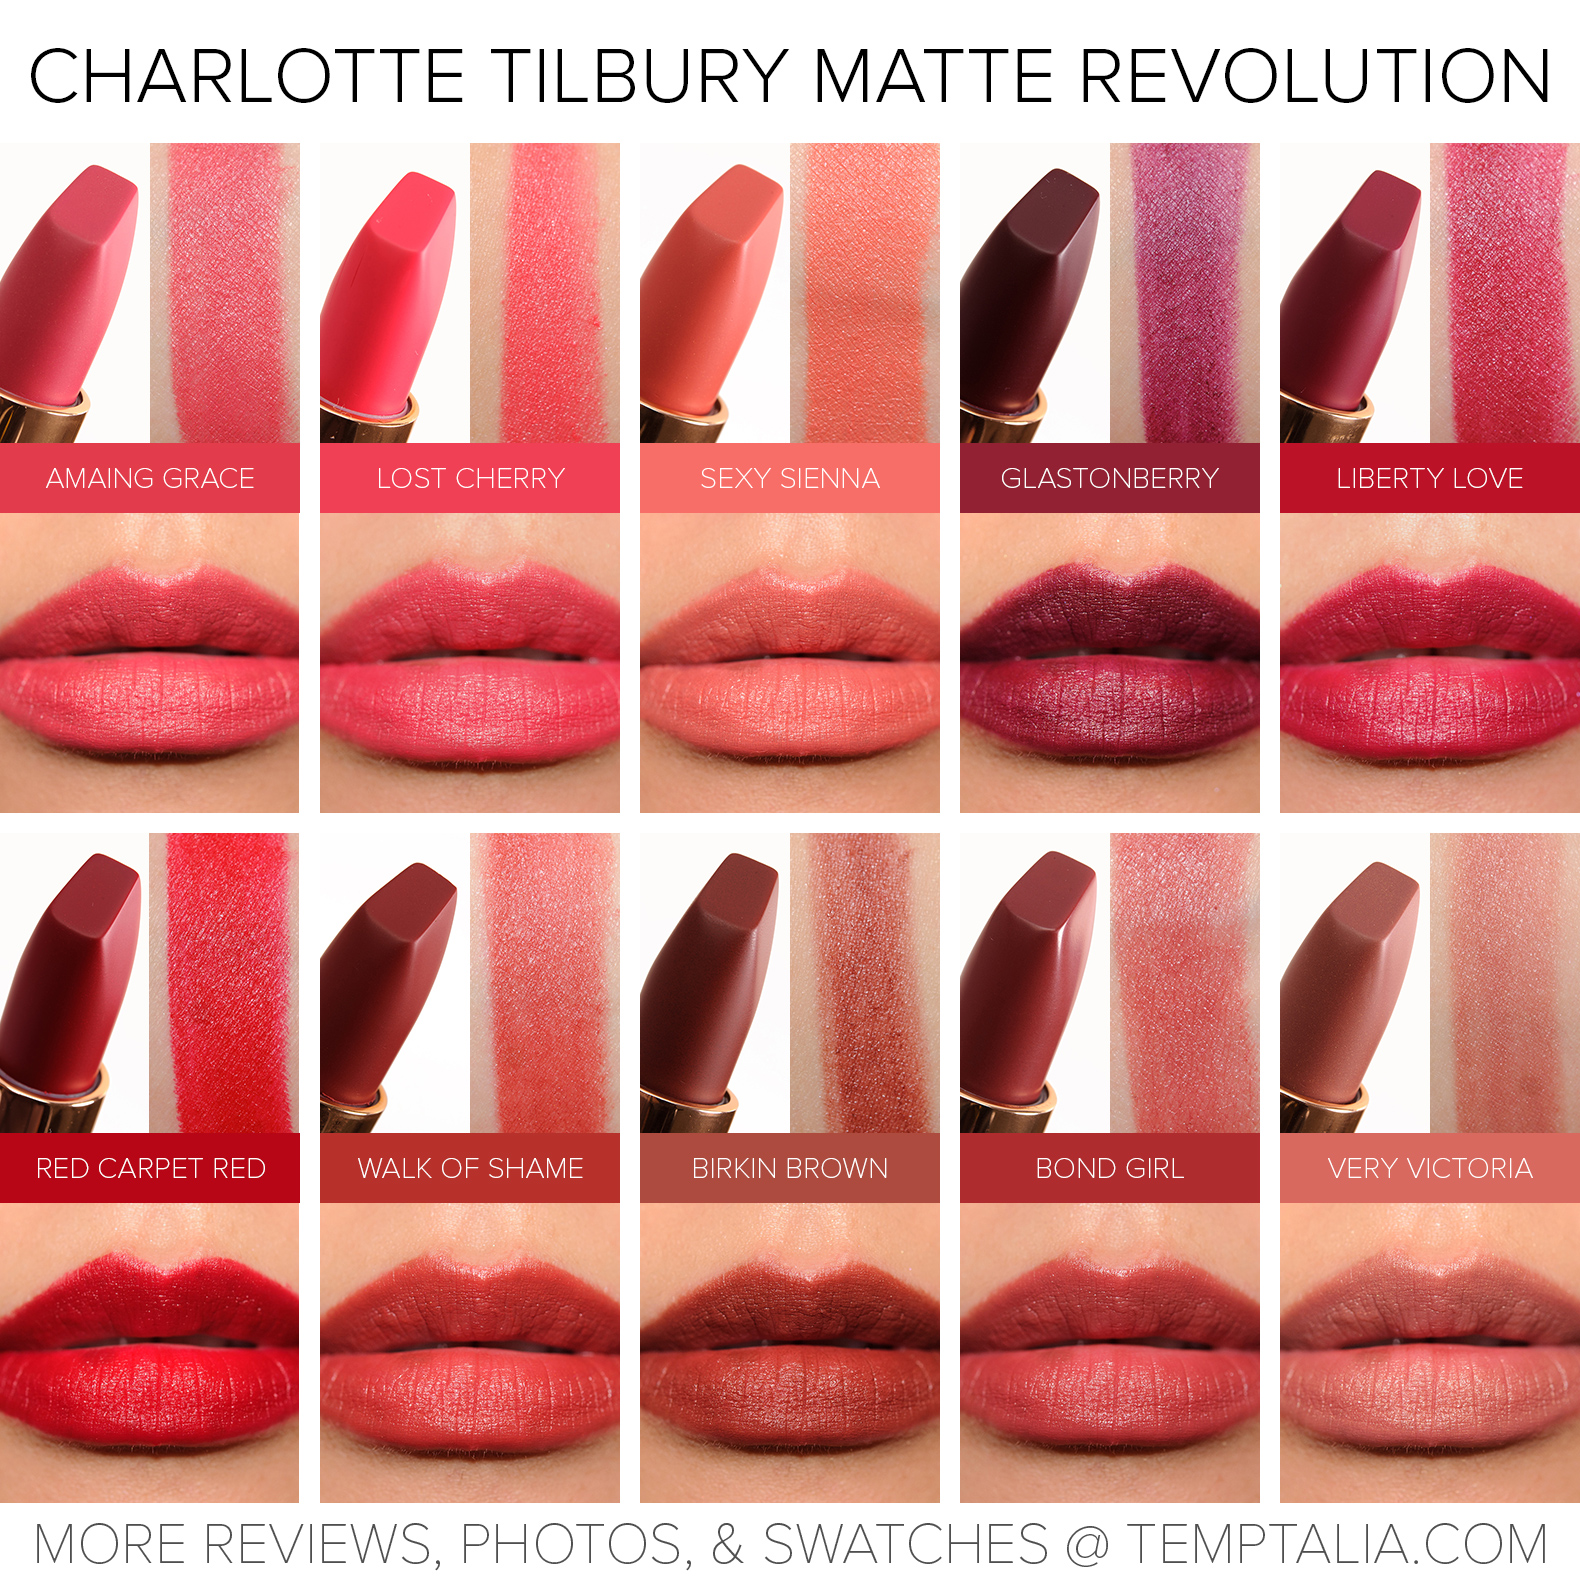 charlottetilbury_matterevolutionsneakpeek001 Top Lipstick Brands 2017-Top 10 Best Lipstick Brands to try this year